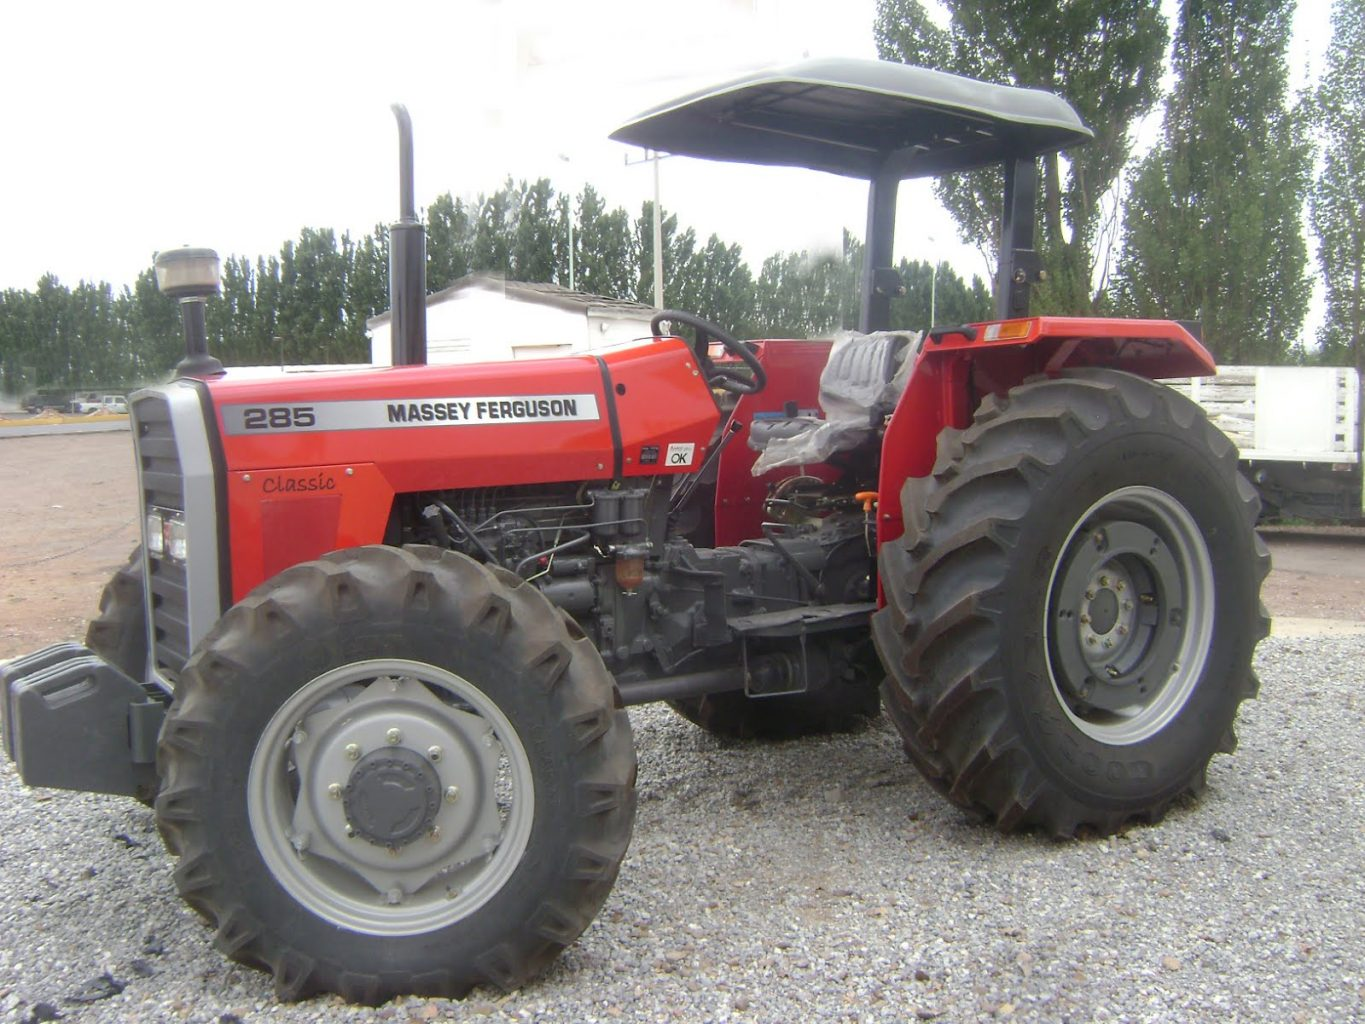 Tractor Differential Lock 4243 : Llll massey ferguson price parts information specs